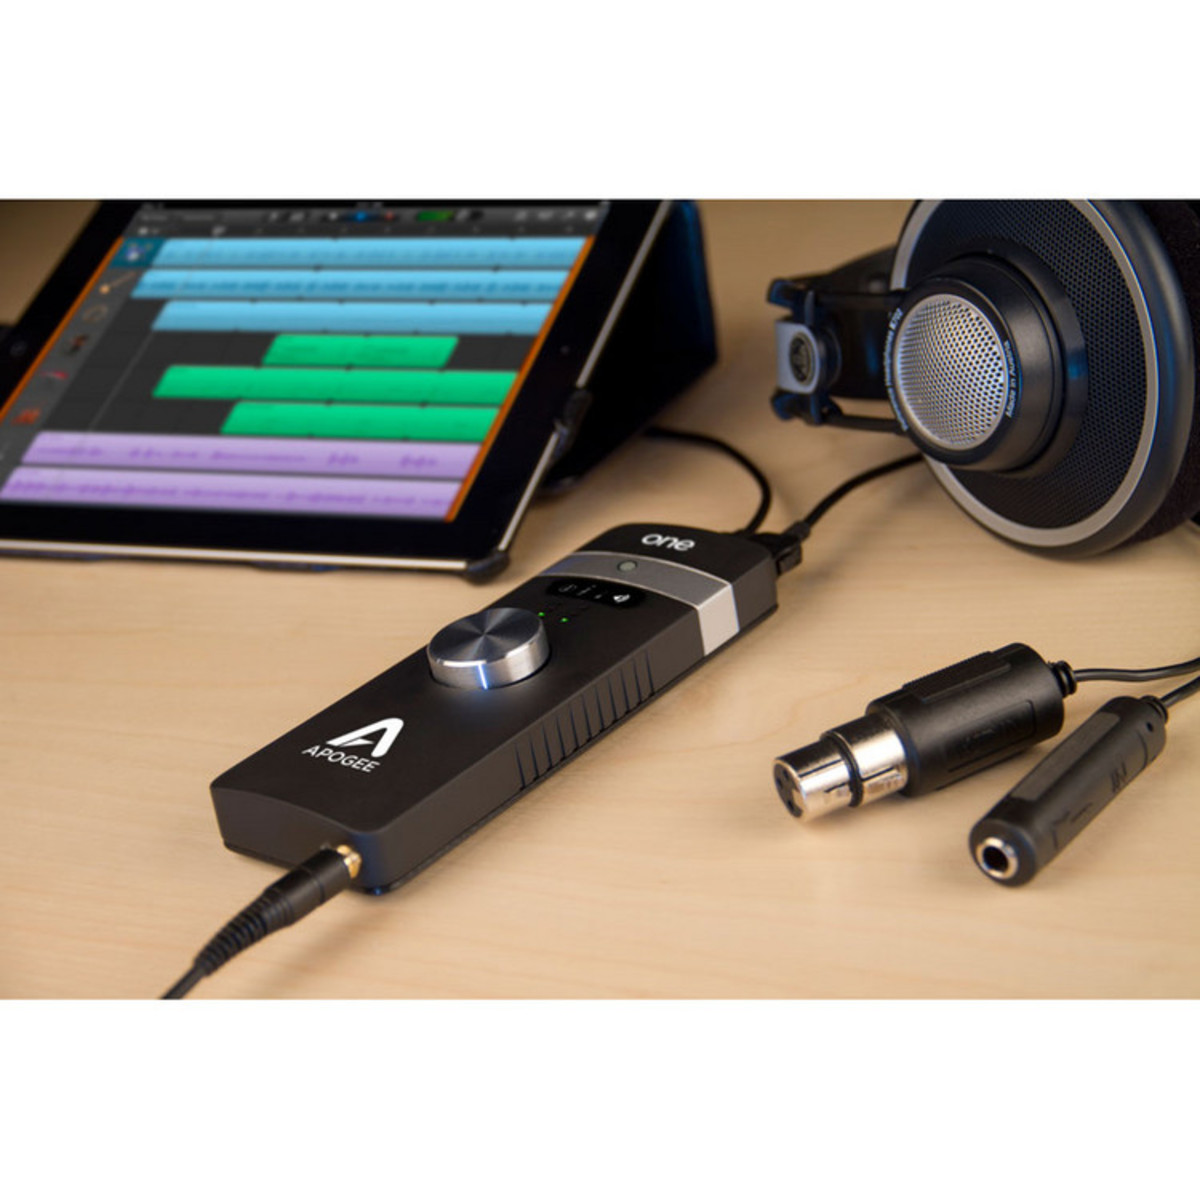 Apogee One Usb Mic And Audio Interface For Ipad Mac At Gear4music Xlr Charger Wiring Diagram Loading Zoom